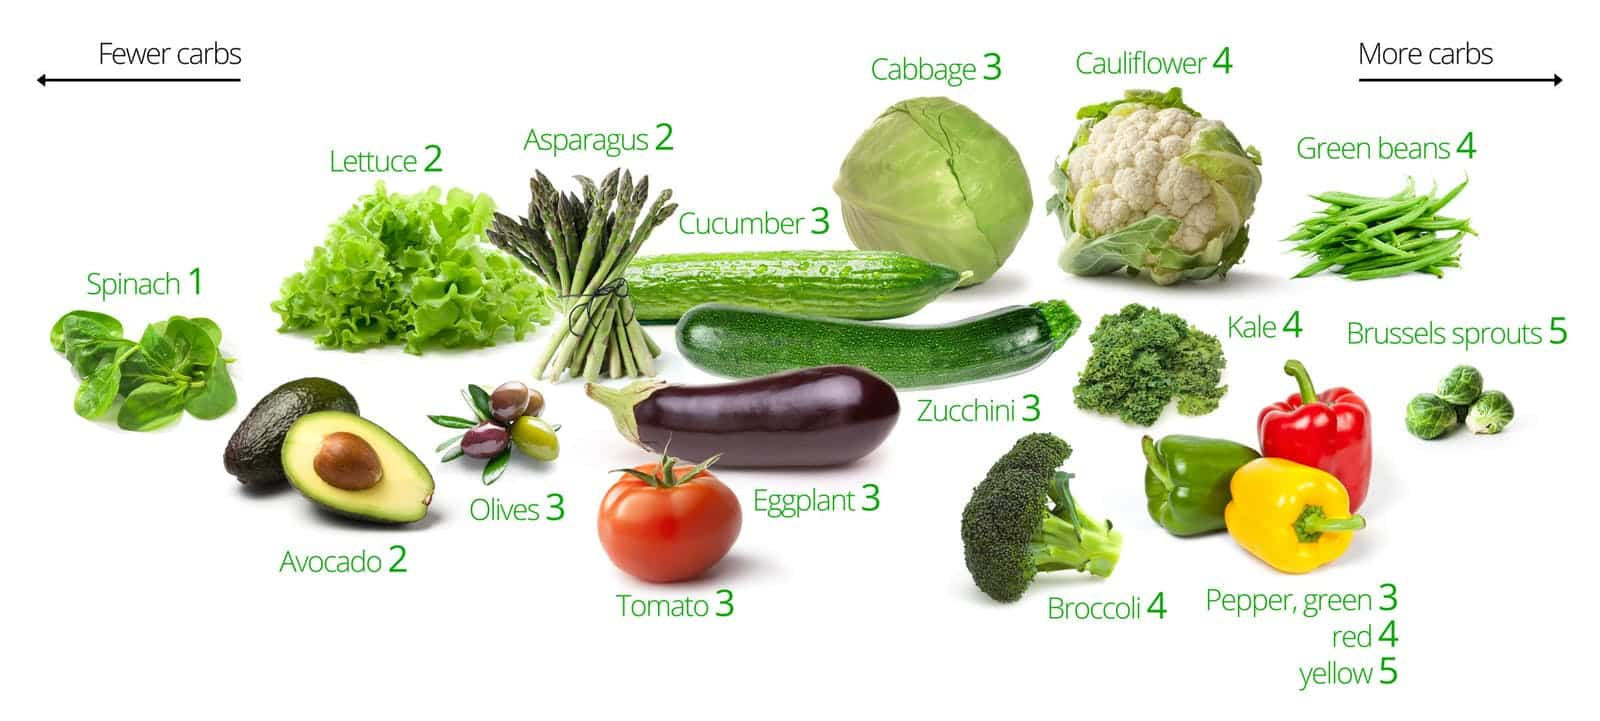 Leafy greens and other non-starchy vegetables